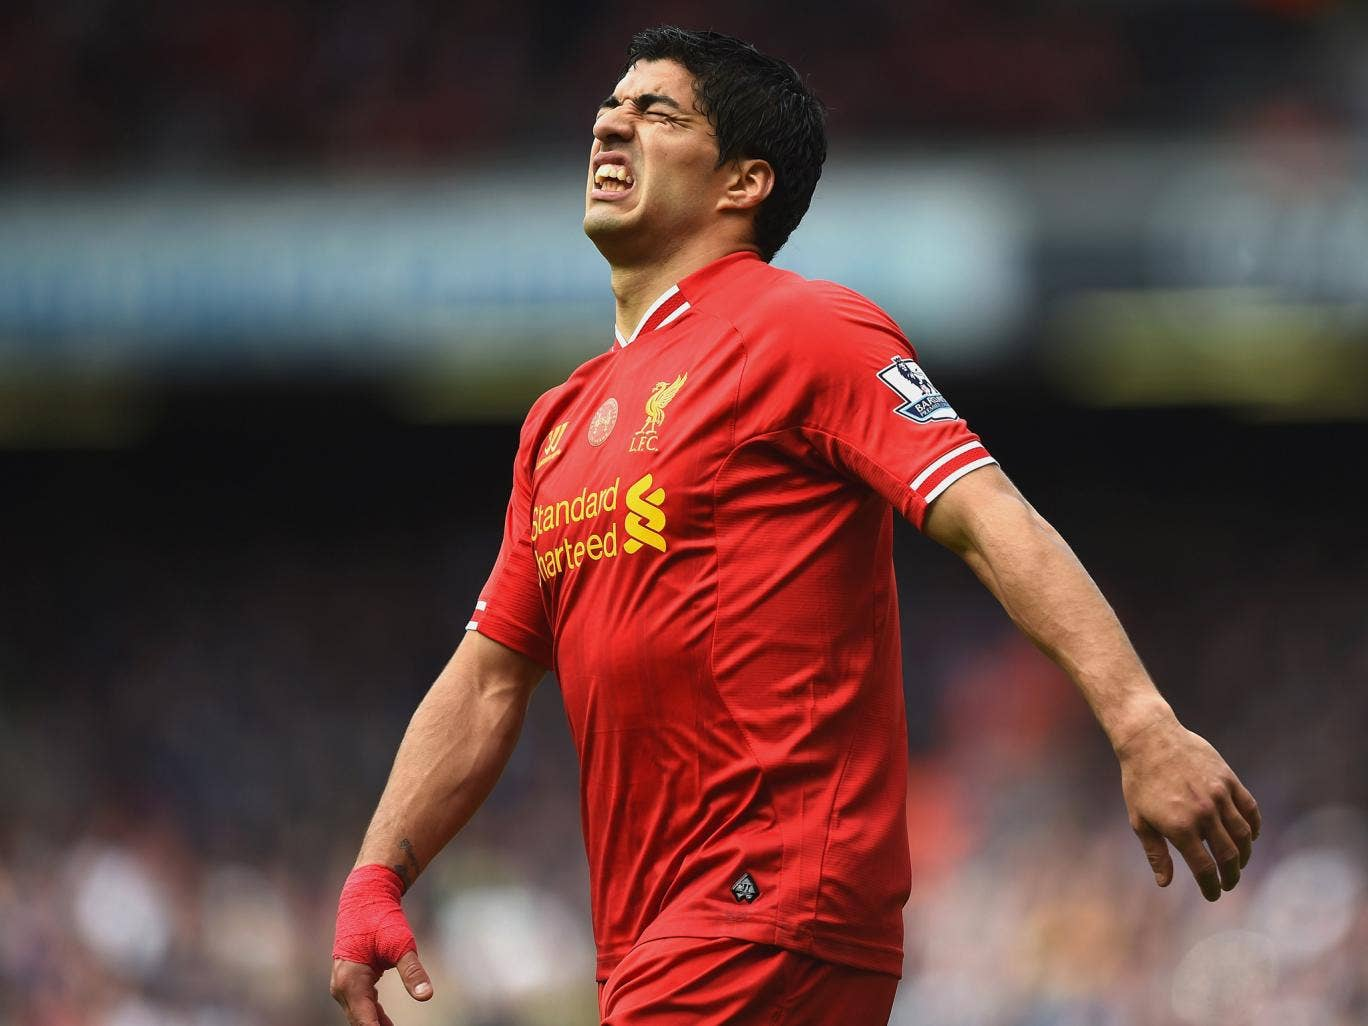 Luis Suarez can't believe it as his goal is disallowed